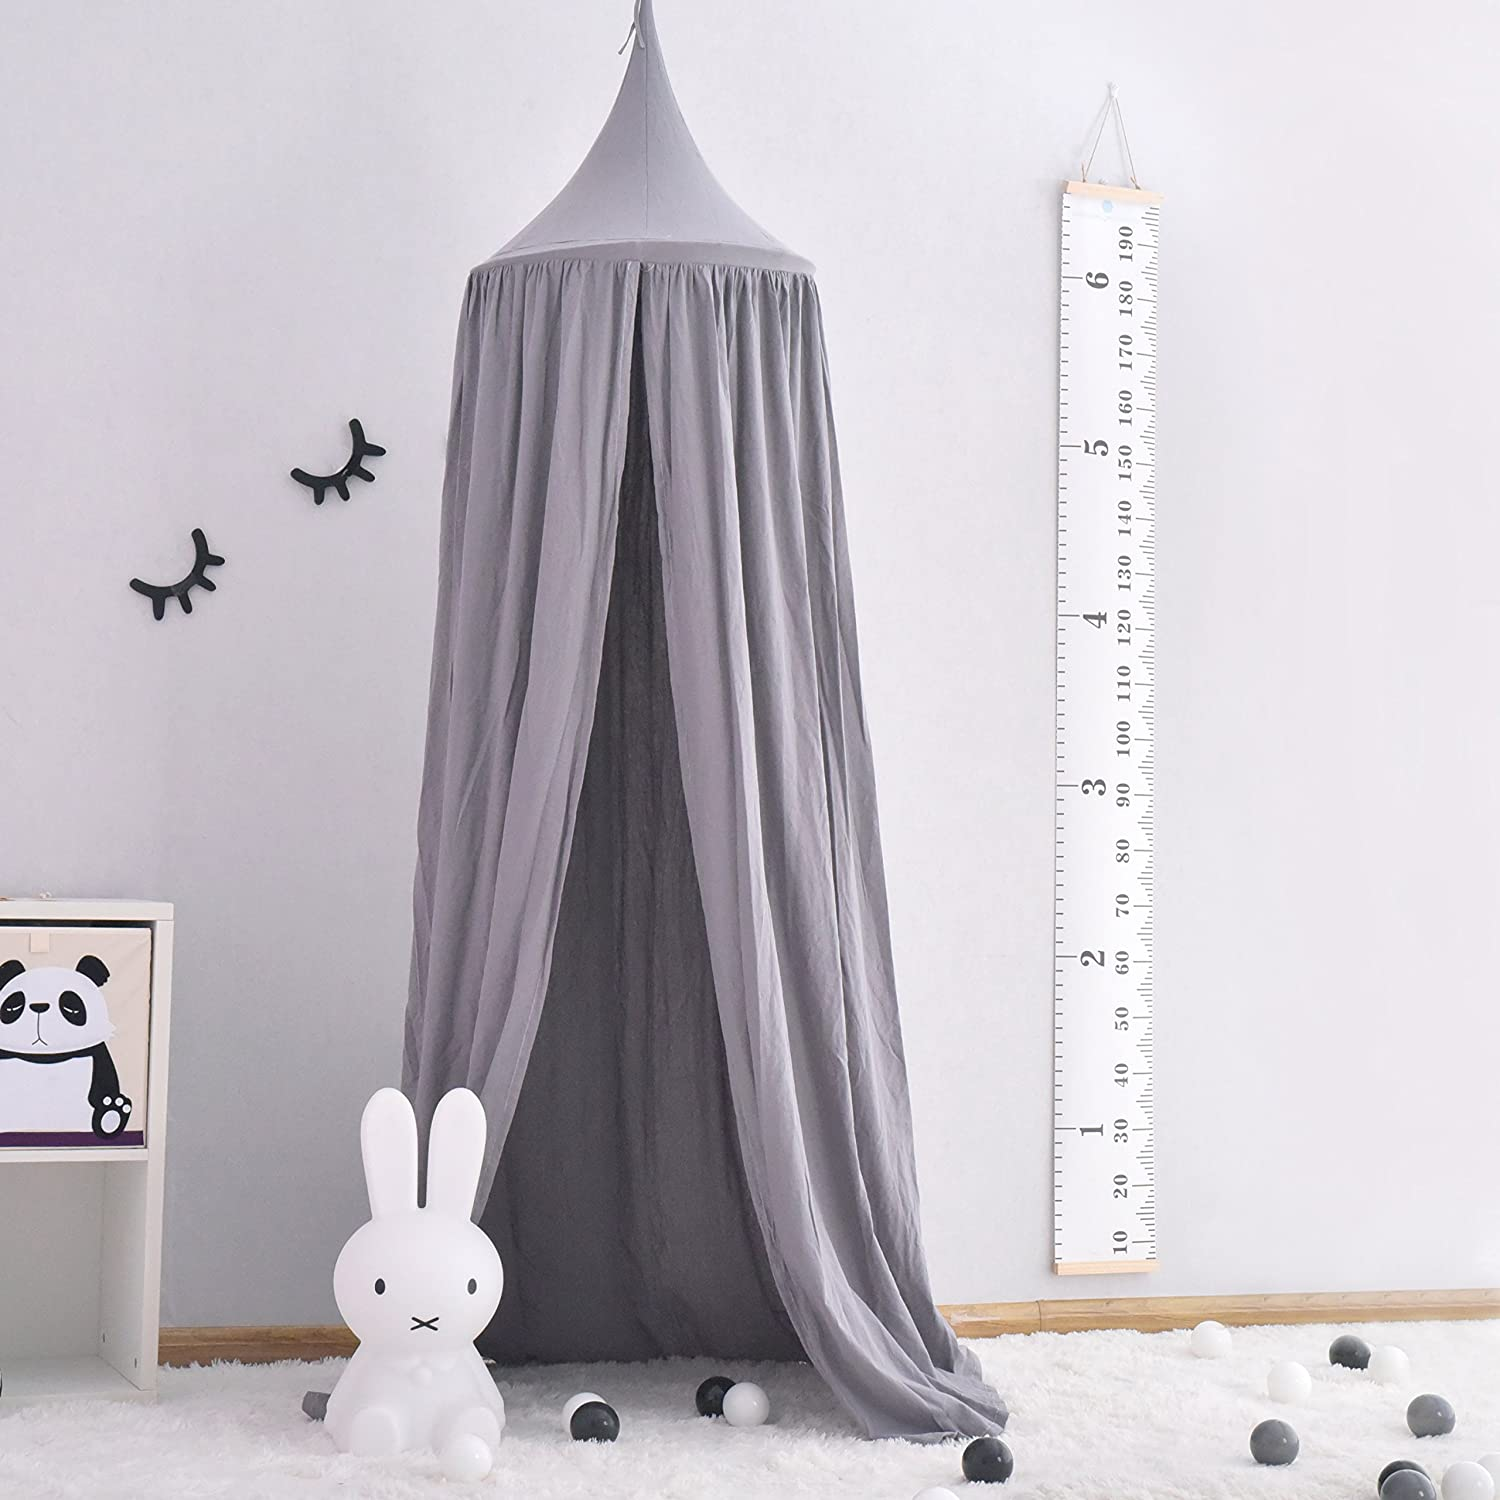 Crib Netting Strong-Willed Baby Bed Block Mosquitoes Tent For Baby Kids Round Dome Bed Canopy Mosquito Netting Curtain Cover Home Baby Mosquit Netting Baby Bedding